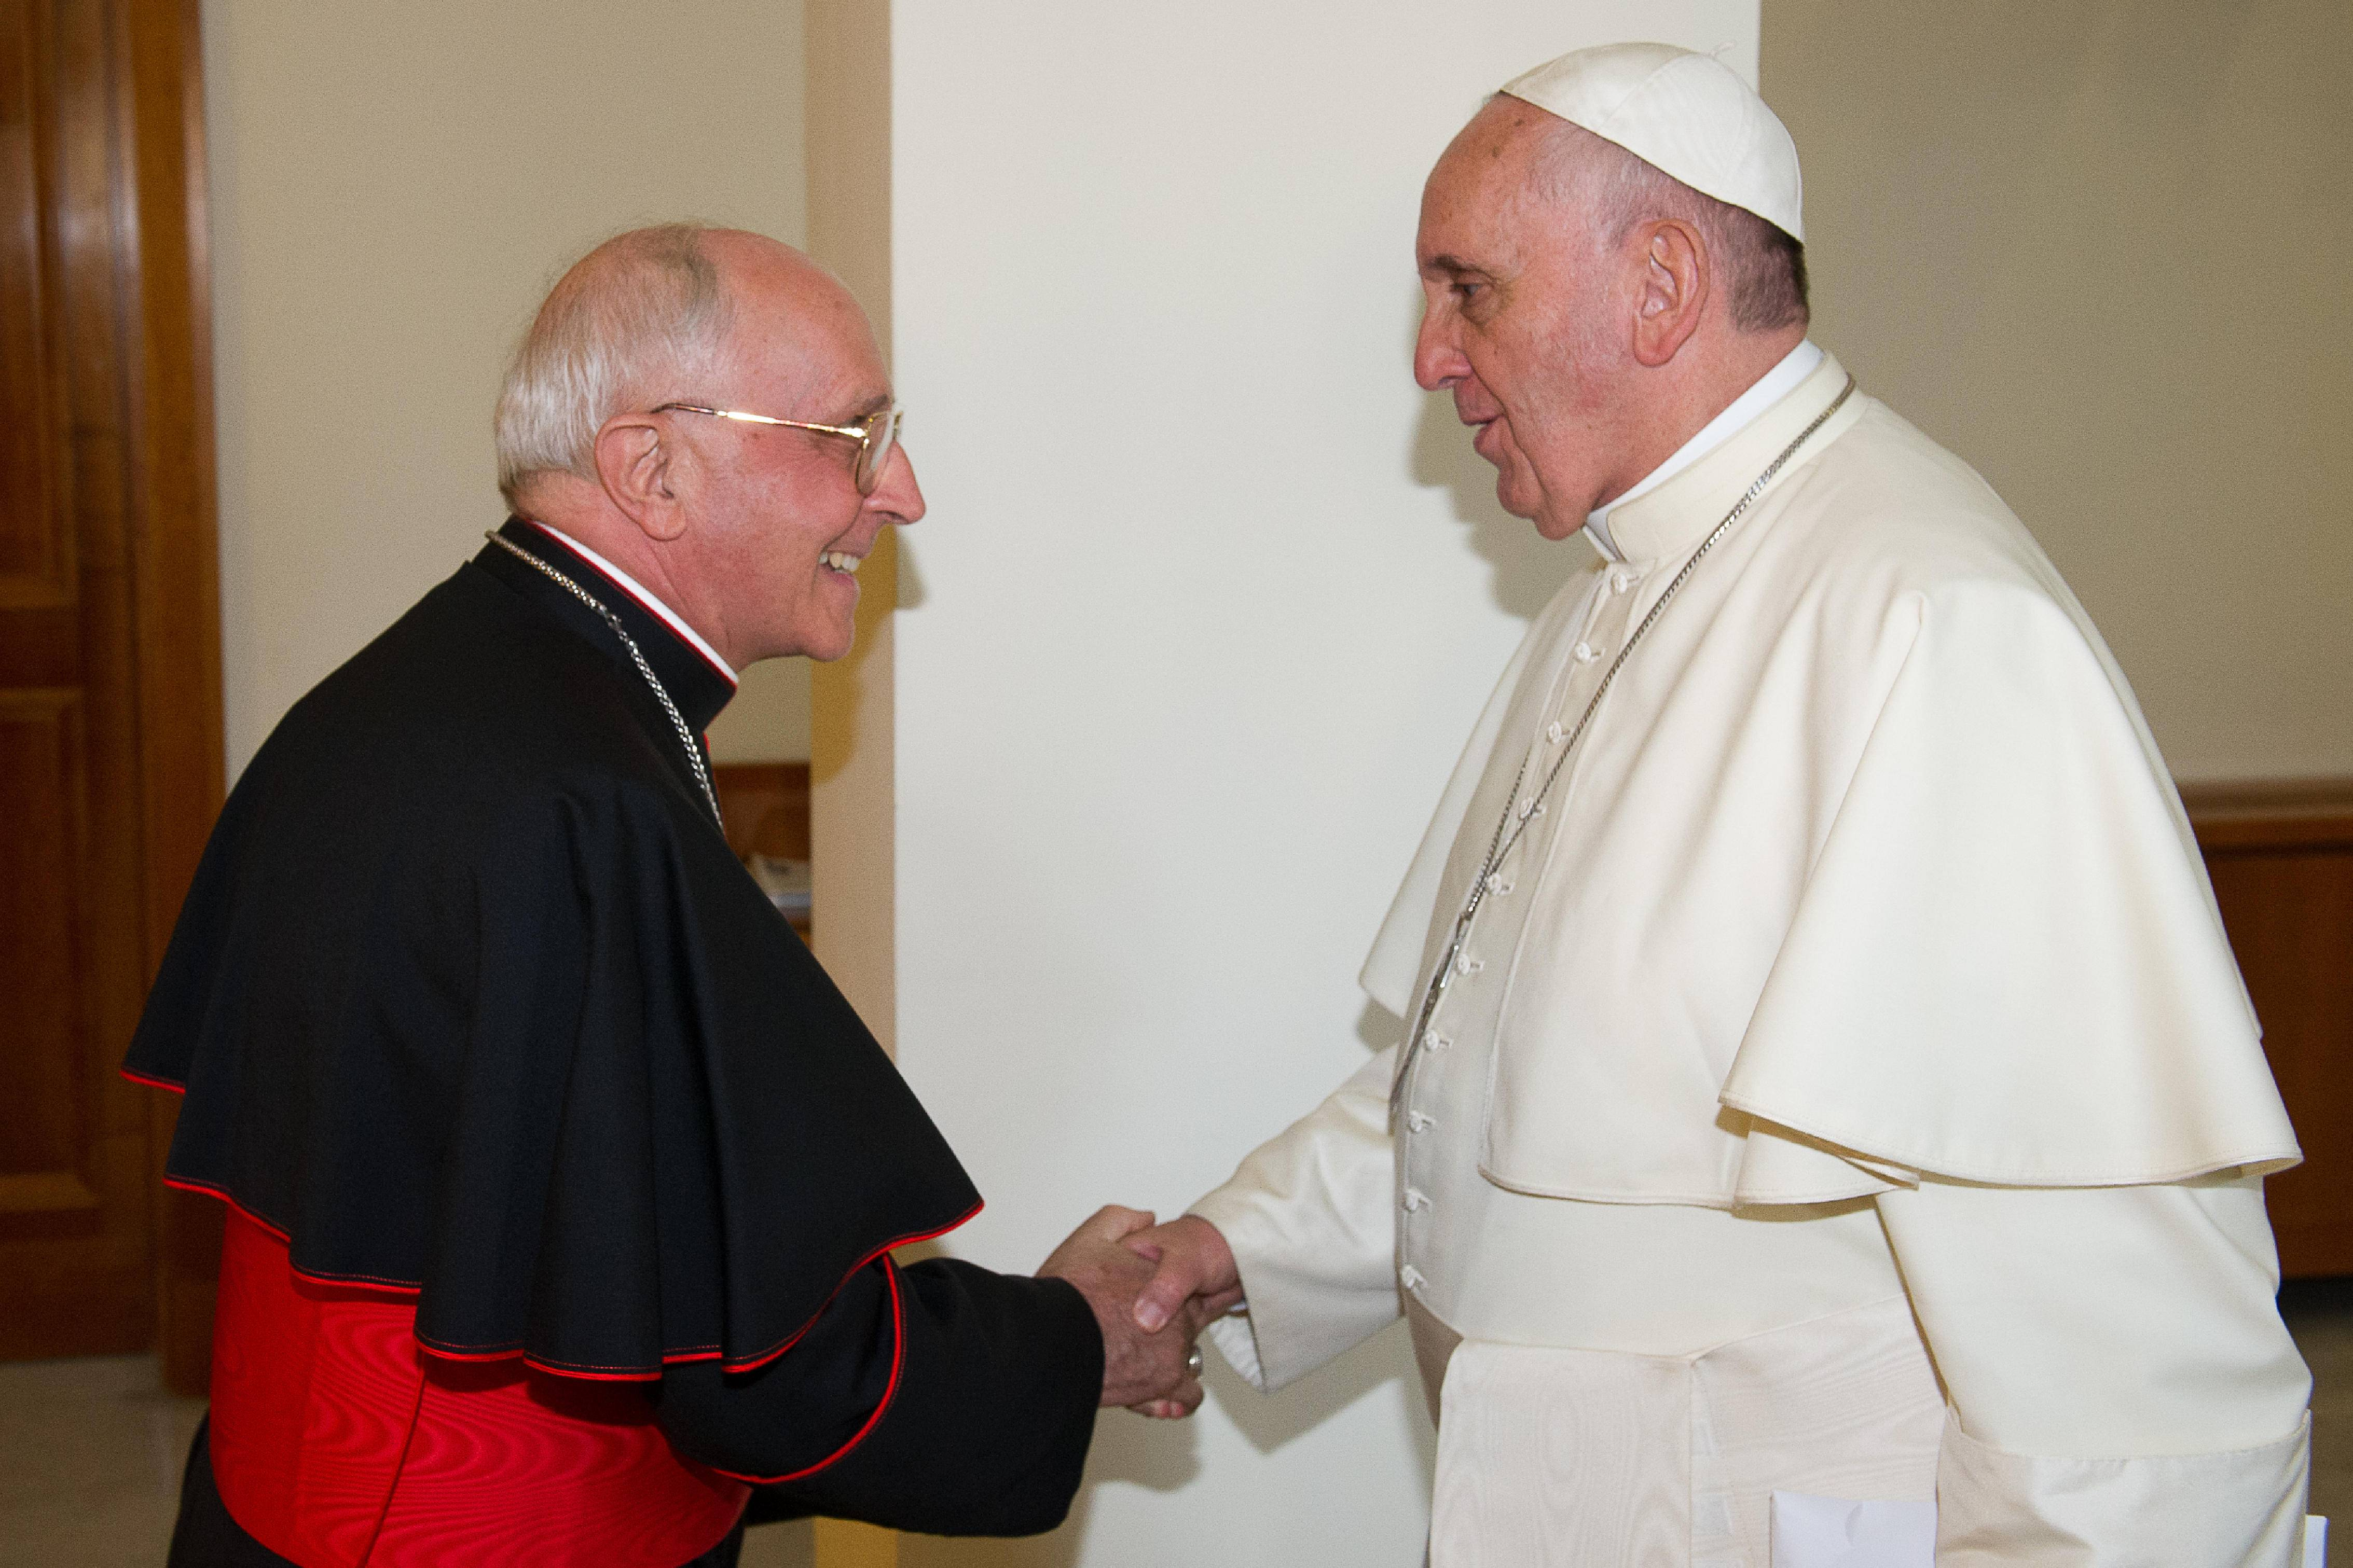 Pope Francis is sending Cardinal Fernando Filoni as his personal envoy to Iraq to show solidarity with Christians who have been forced from their homes by Islamic militants.